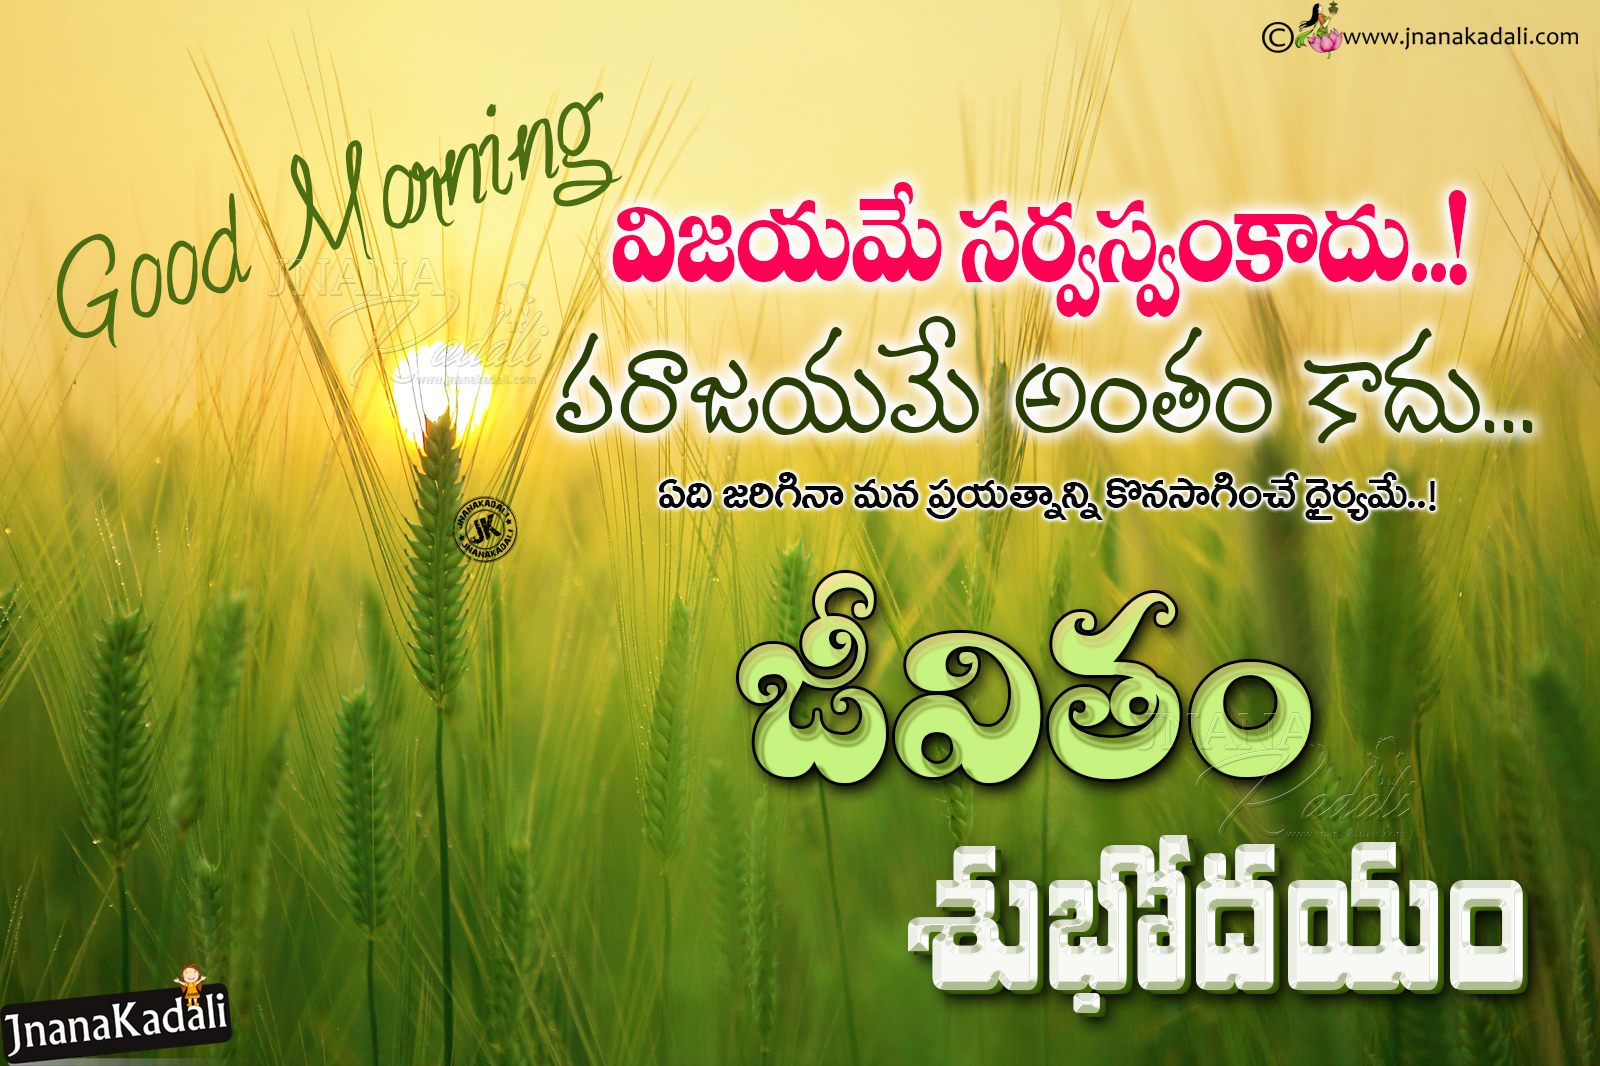 Good Morning Telugu Life Value Quotes Sms Messages And Sayings Hd